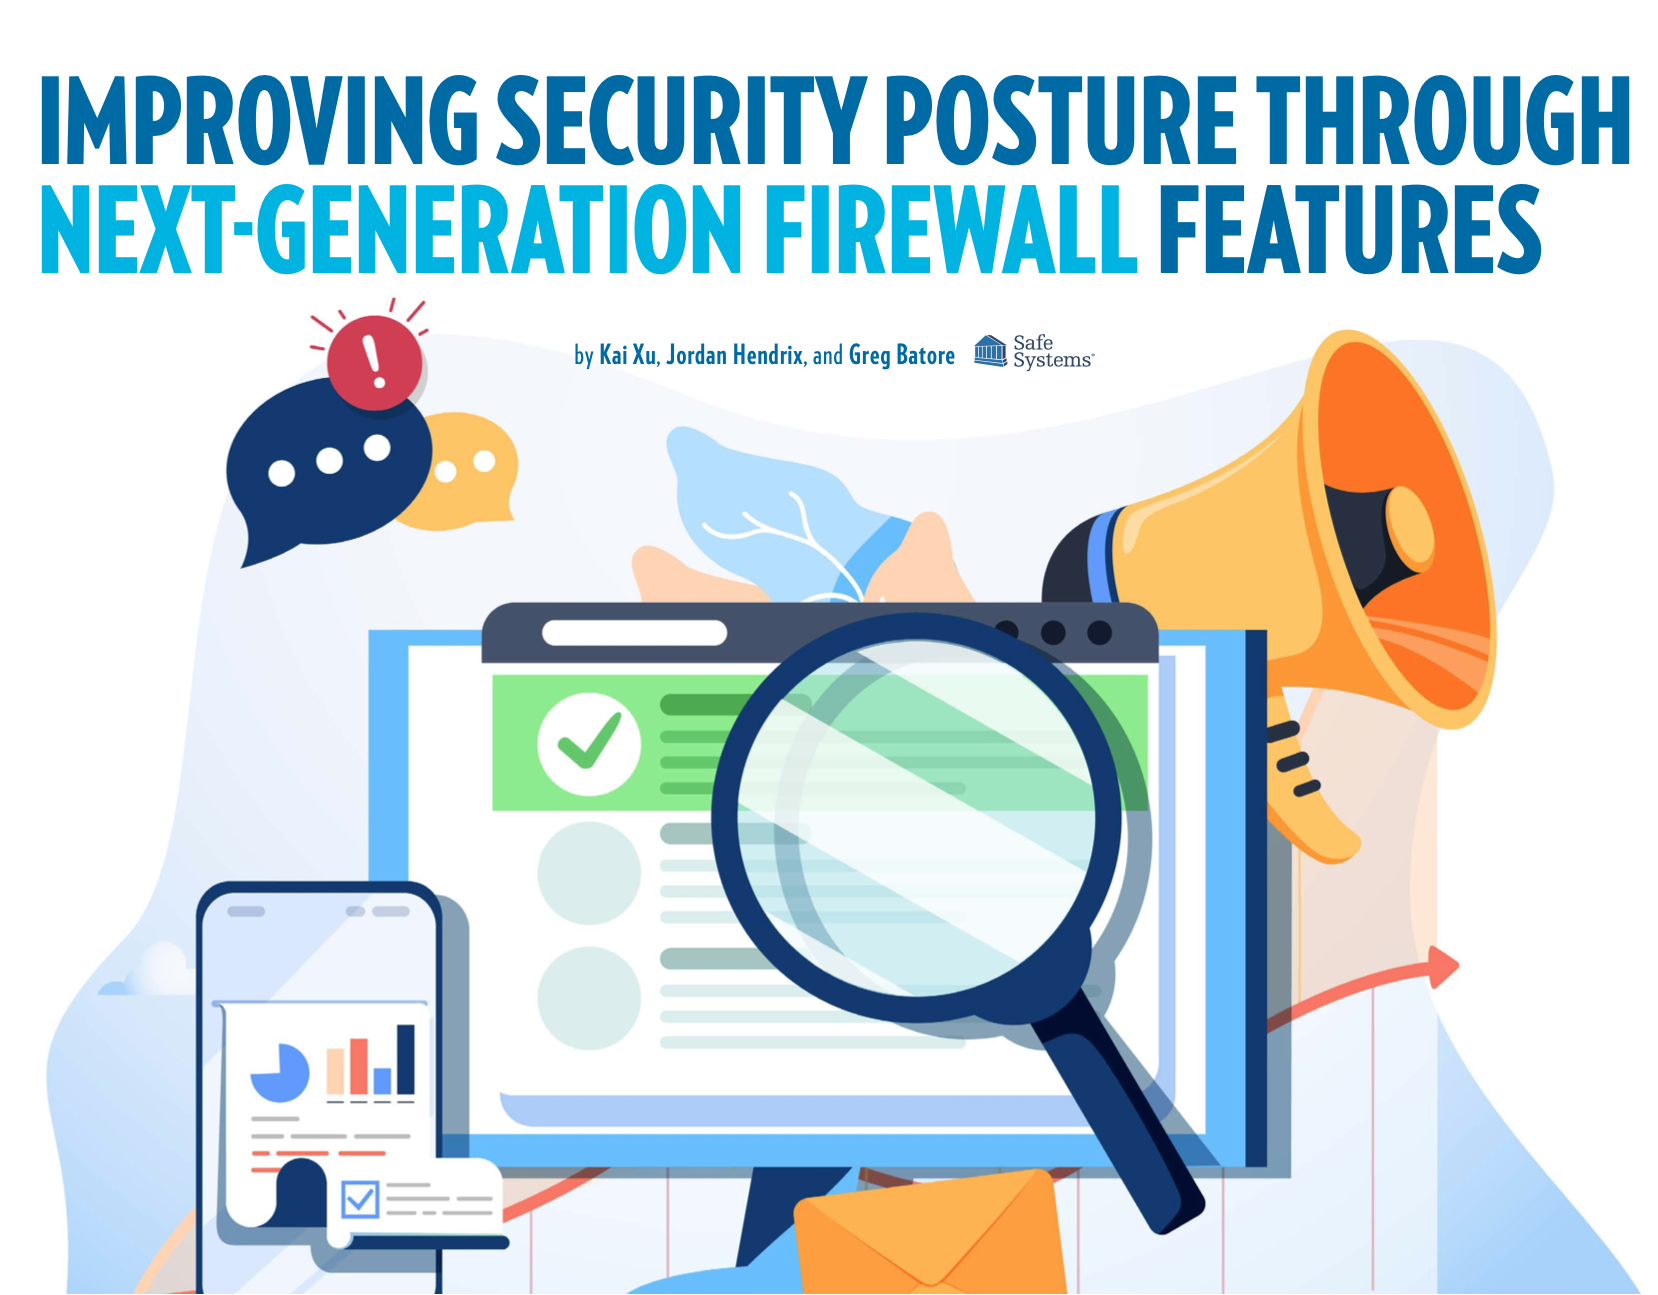 Improving Security Posture Through Next-Generation Firewall Features